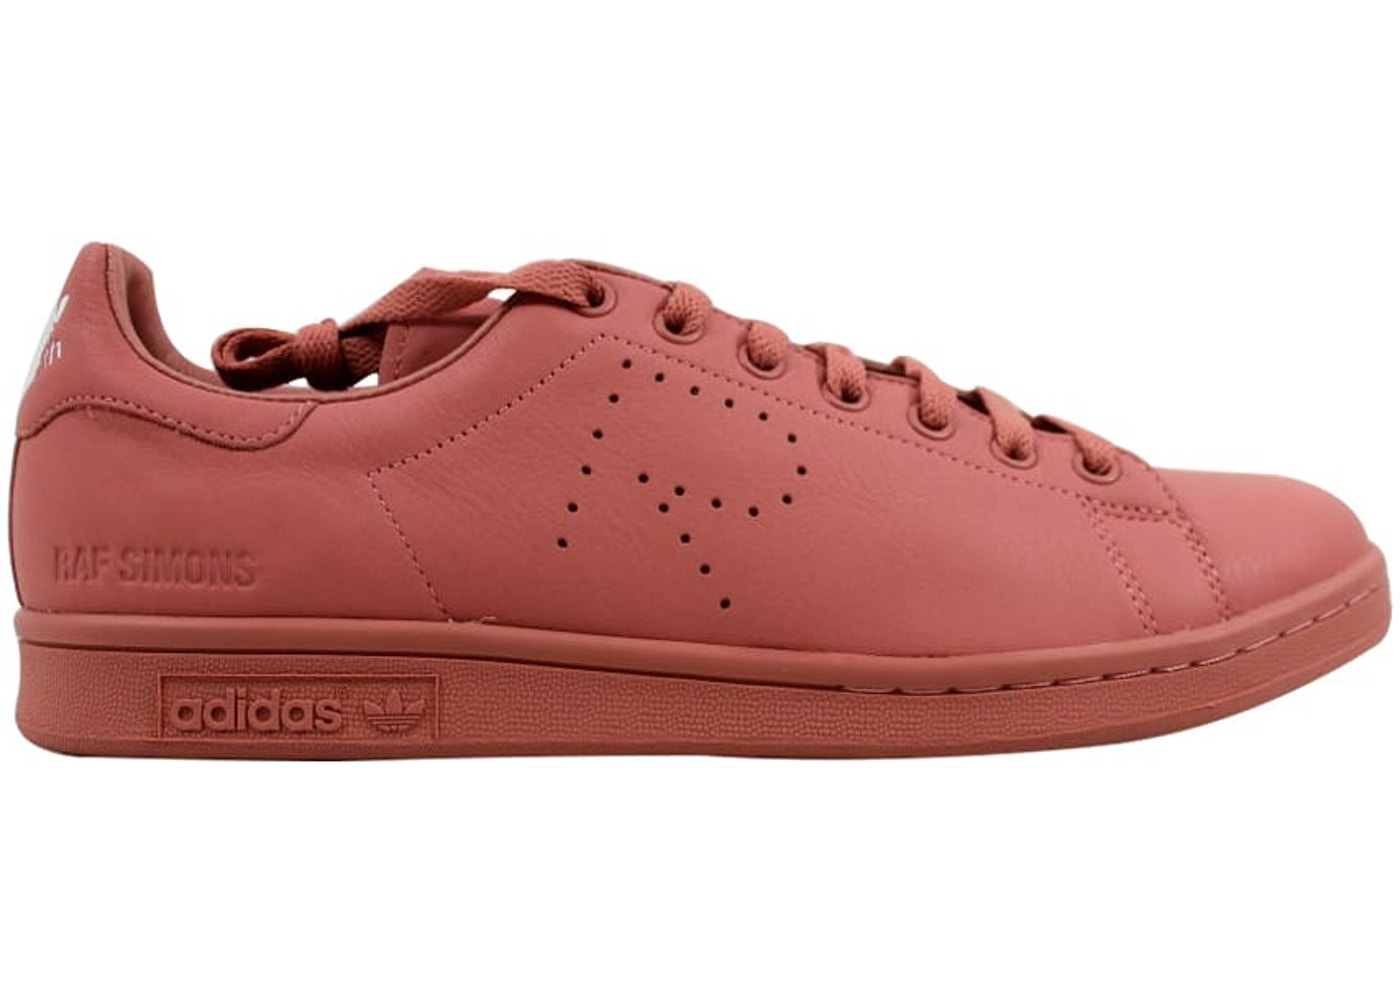 sports shoes d4fc8 7ed89 adidas Raf Simons Stan Smith Ash Pink/Ash Pink - AQ2646